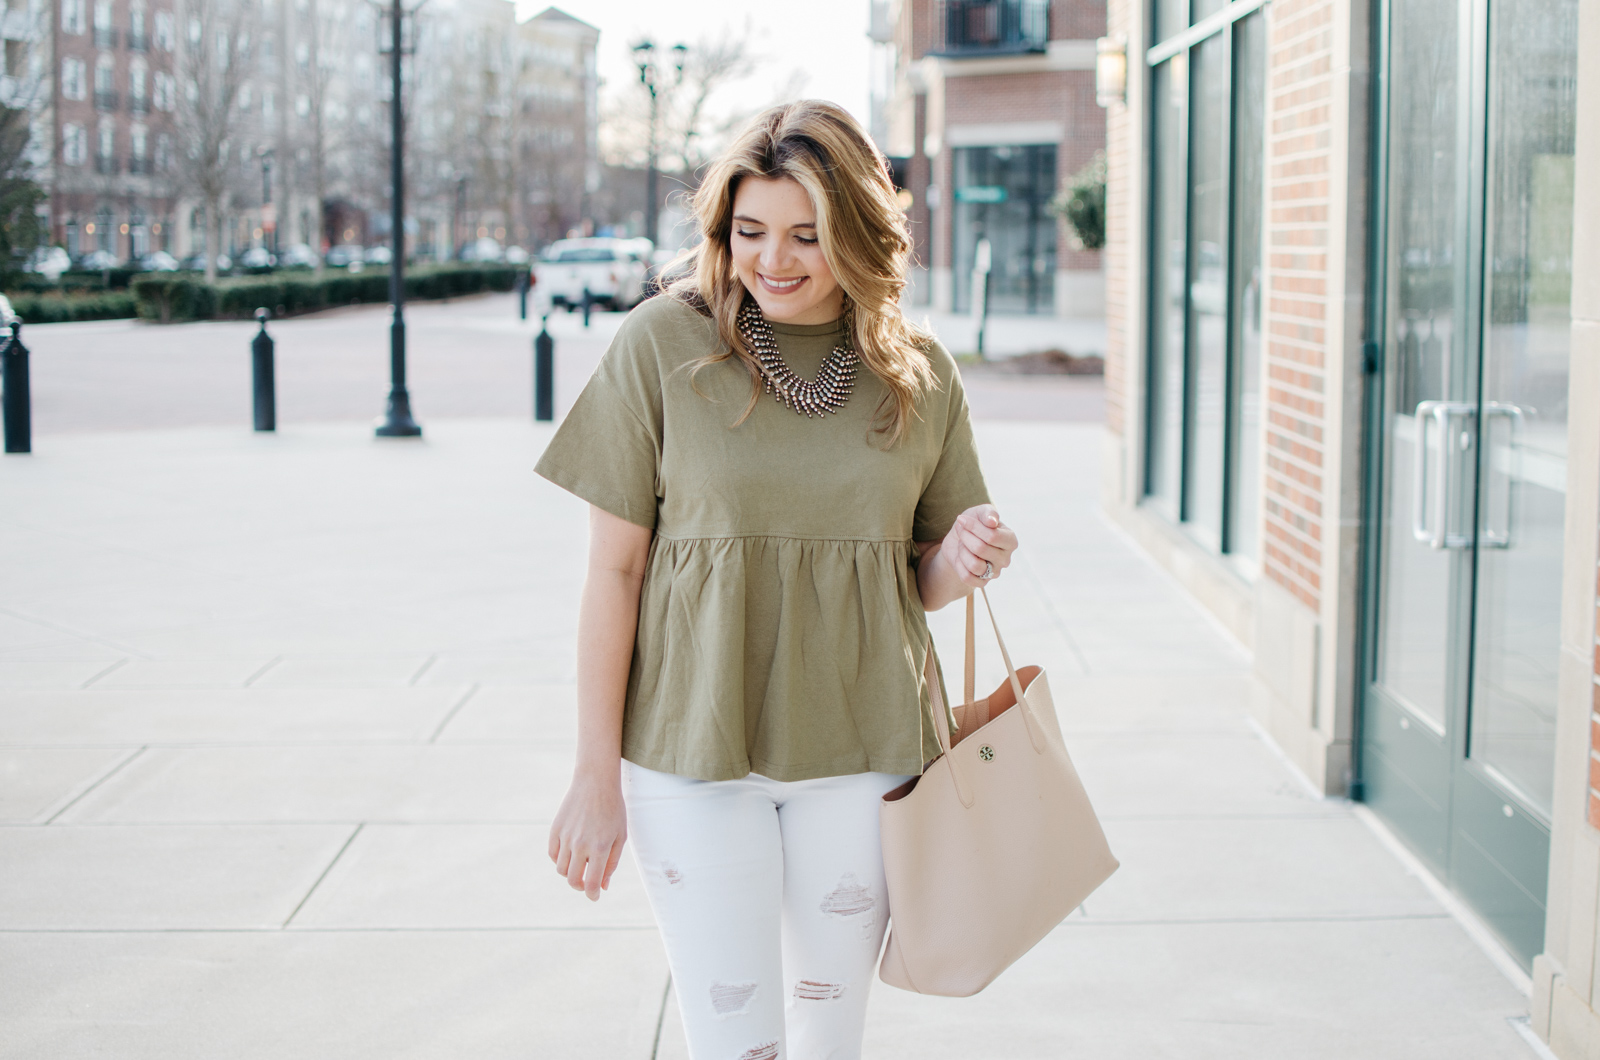 spring mom style - mom outfit ideas for Spring. Click through for more cute casual outfits or to shop this look! bylaurenm.com